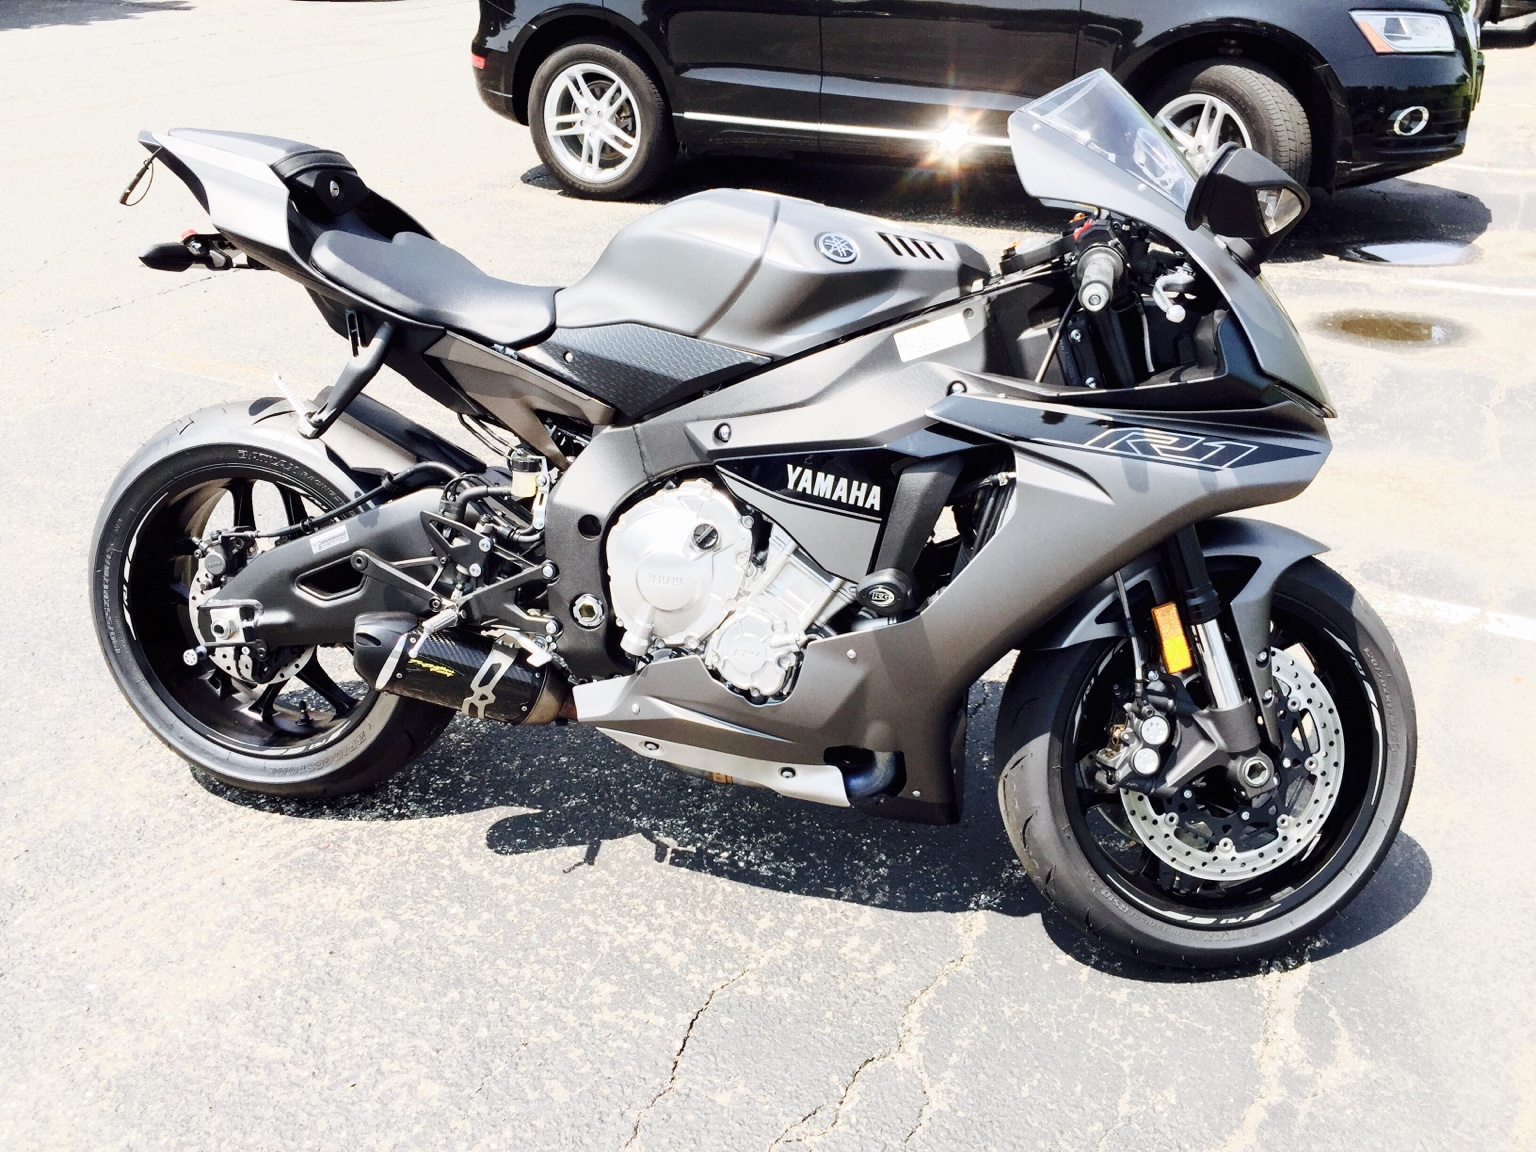 2016 r1s looking for affordable exhaust page 2 for 2016 yamaha r1s